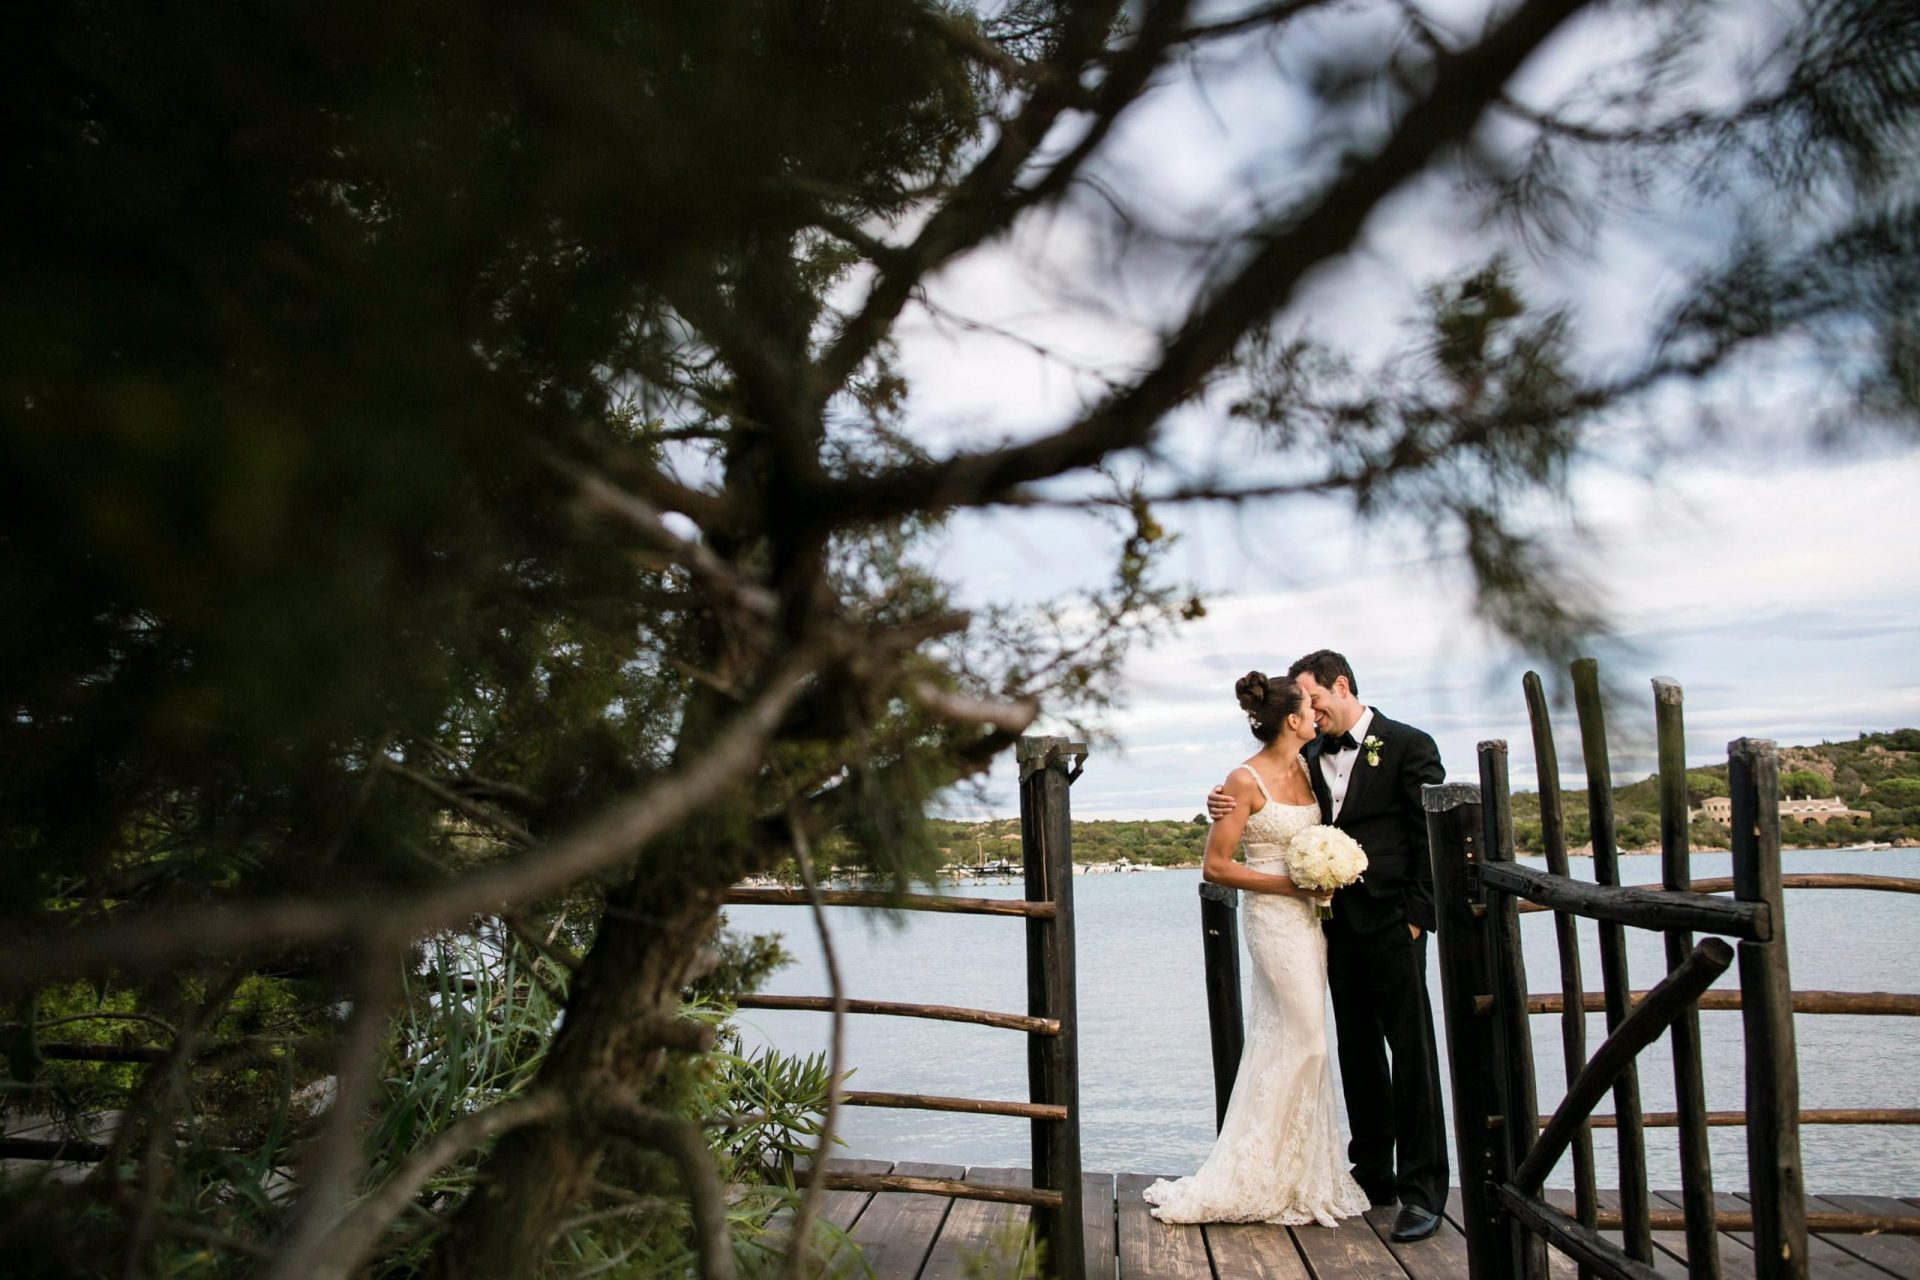 Lisa and Daniel, luxury wedding reception in Cala di Volpe, the bride and the groom